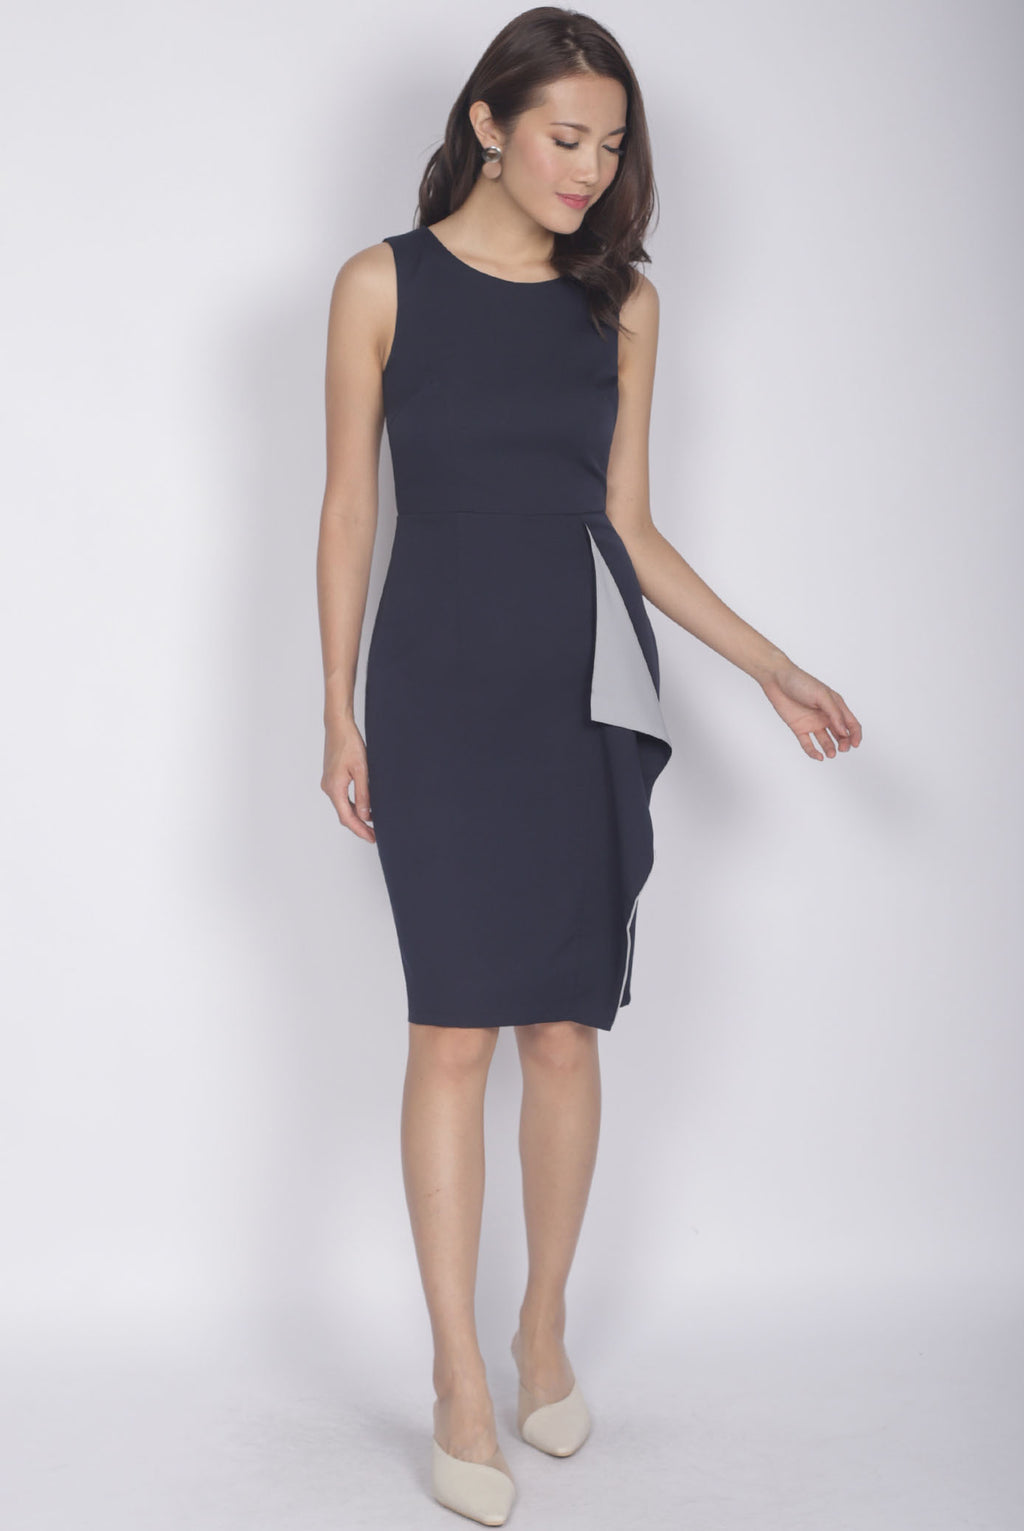 [Exclusive] Ninette Waterfall Work Dress In Navy Blue